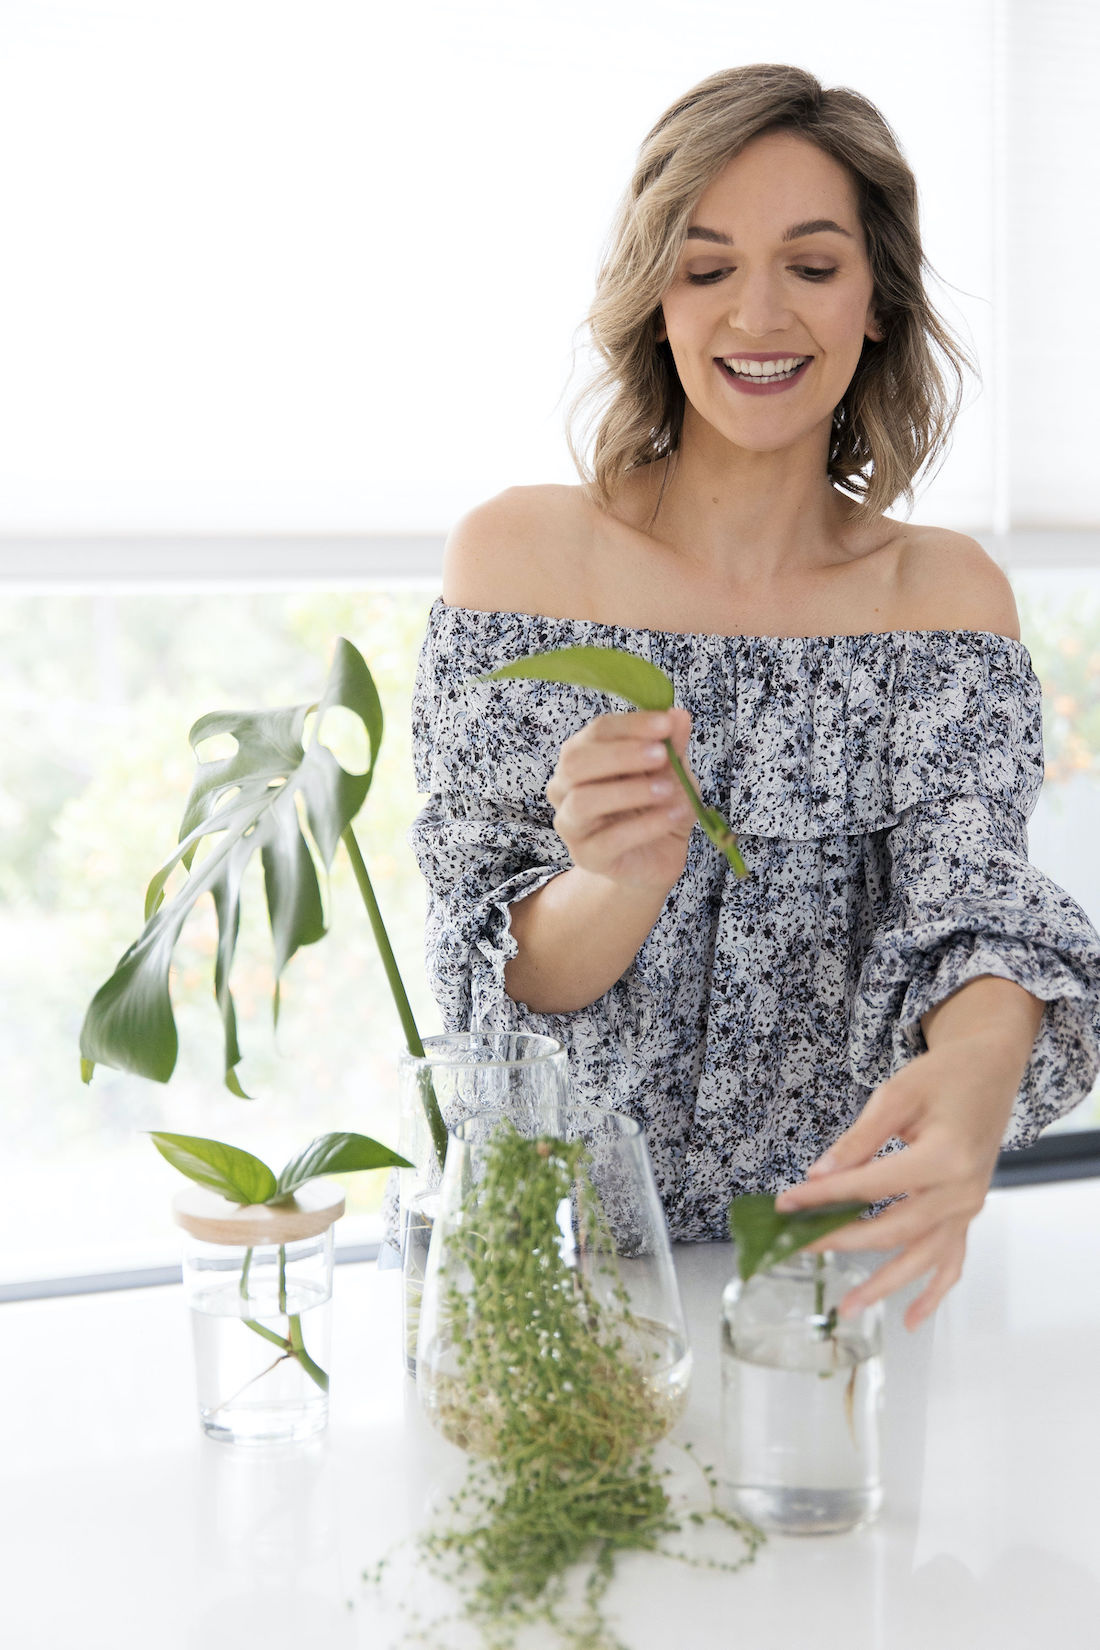 Gina growing plants in water